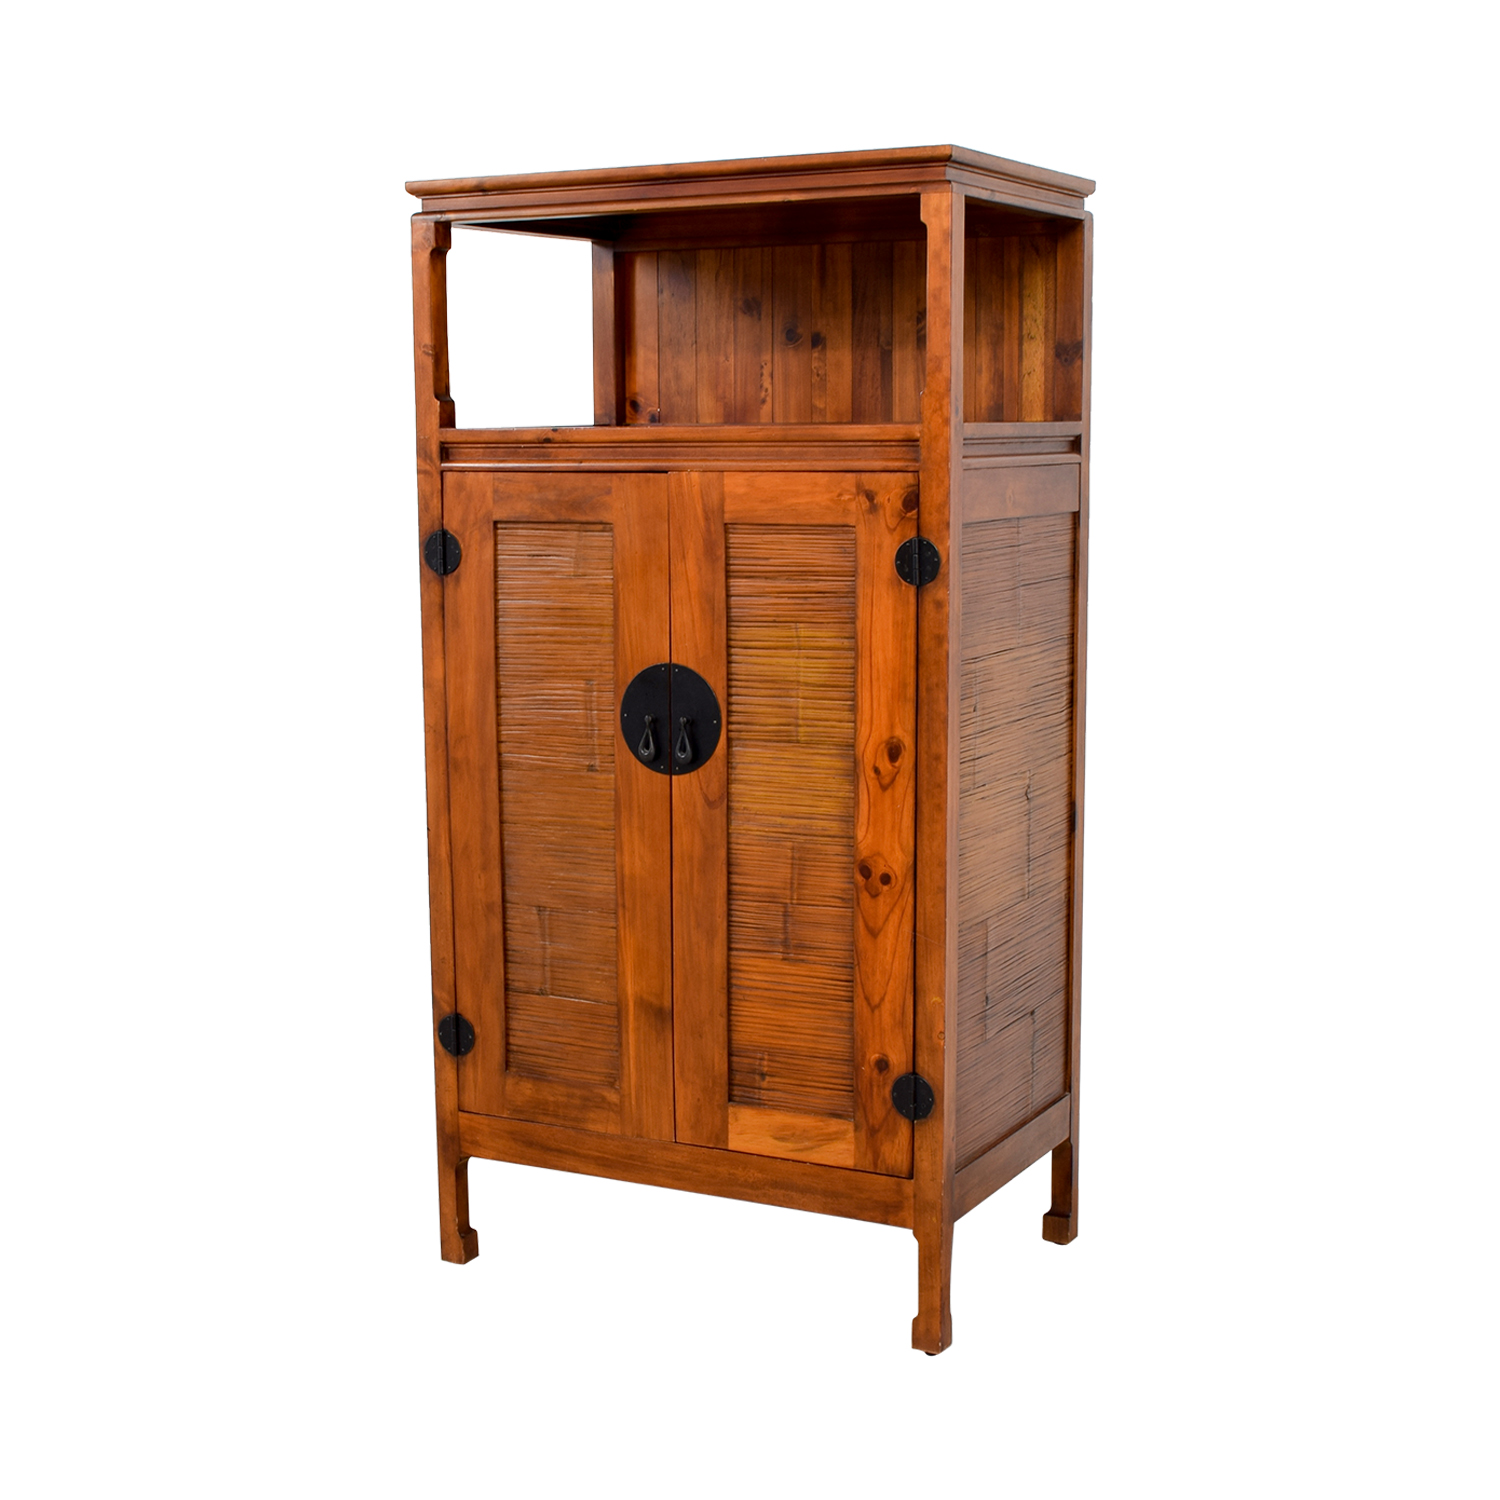 Off Pier Imports Asian Armoire Entertainment Cabinet Storage